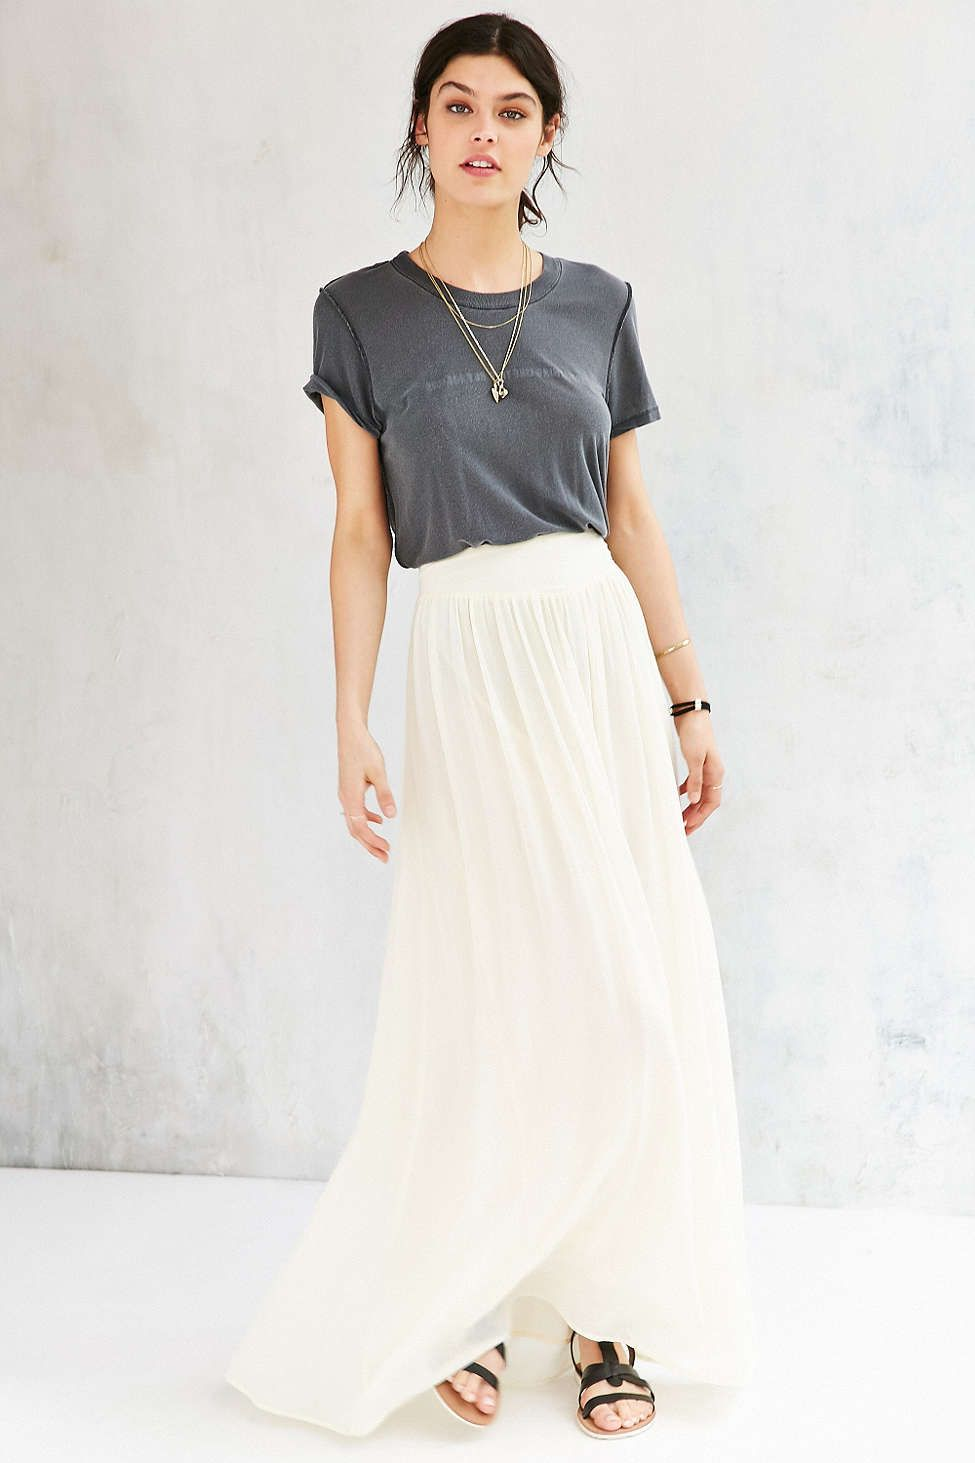 Fashion style Maxi Chiffon skirt pinterest pictures for woman